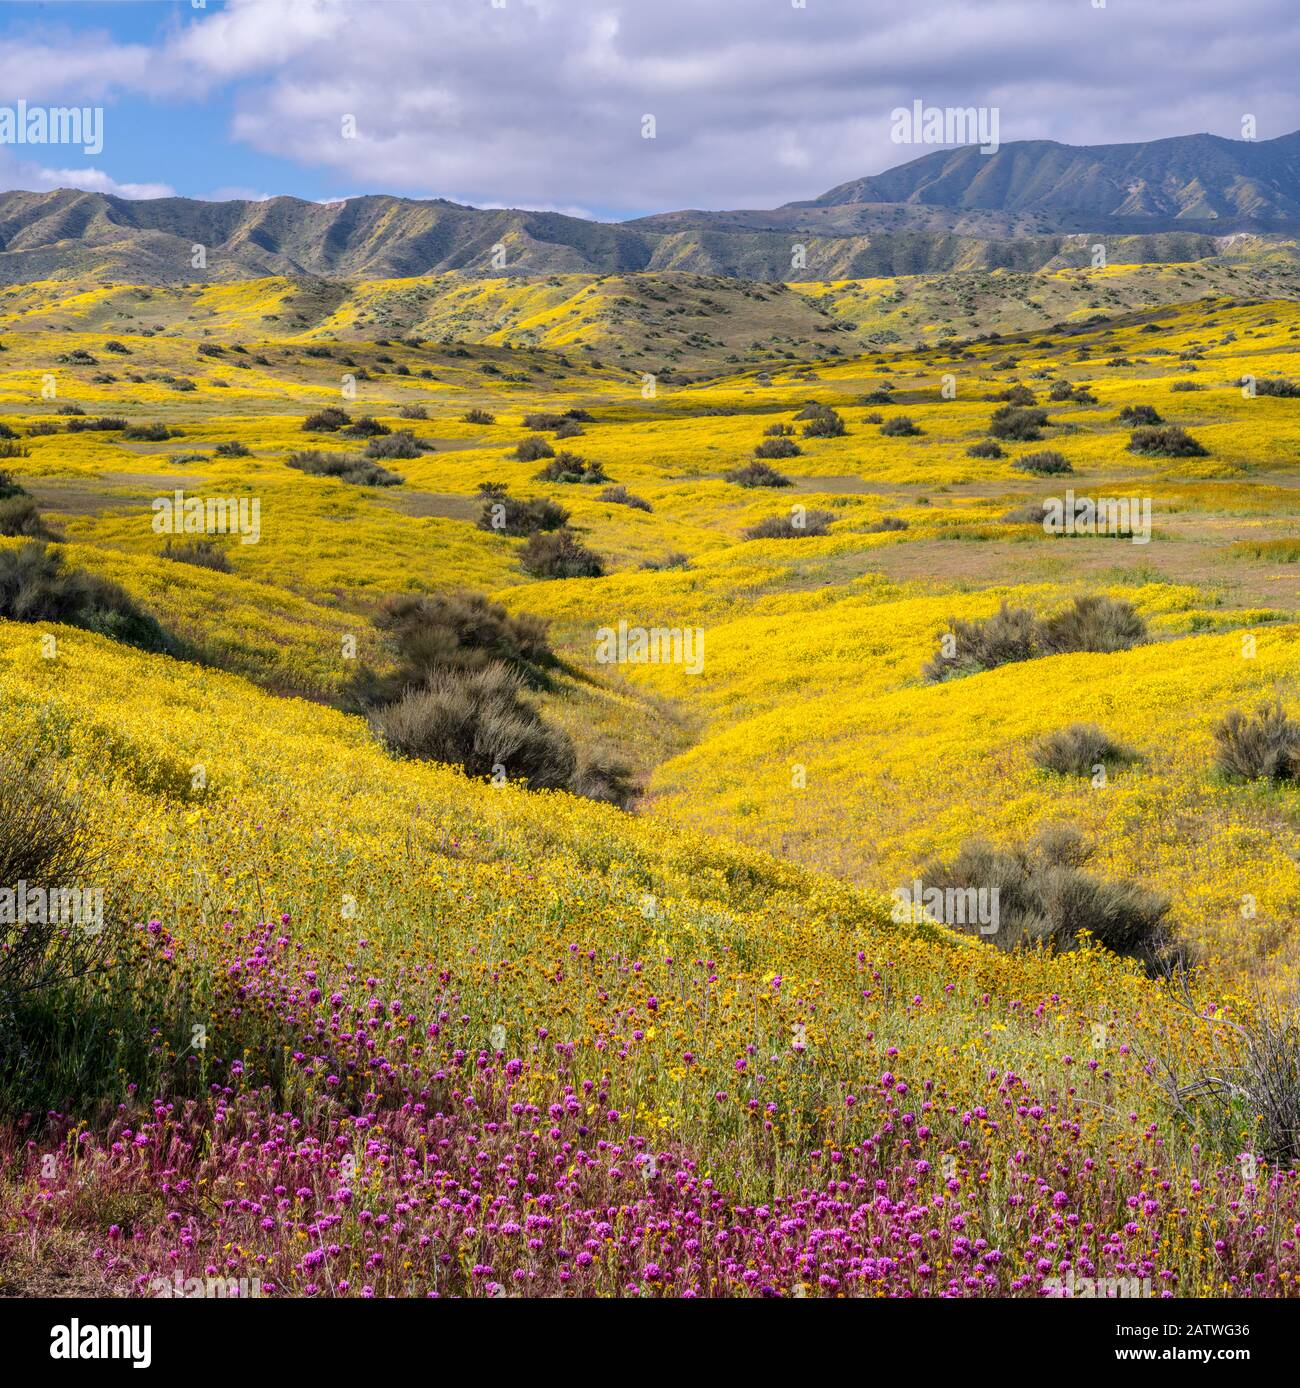 Foothills of the Temblor Range, carpeted with Coreopsis (yellow) and Purple Owls Clover (Castilleja exserta) flowers. Carrizo Plain, California, USA. 30th March 2019. Stock Photo